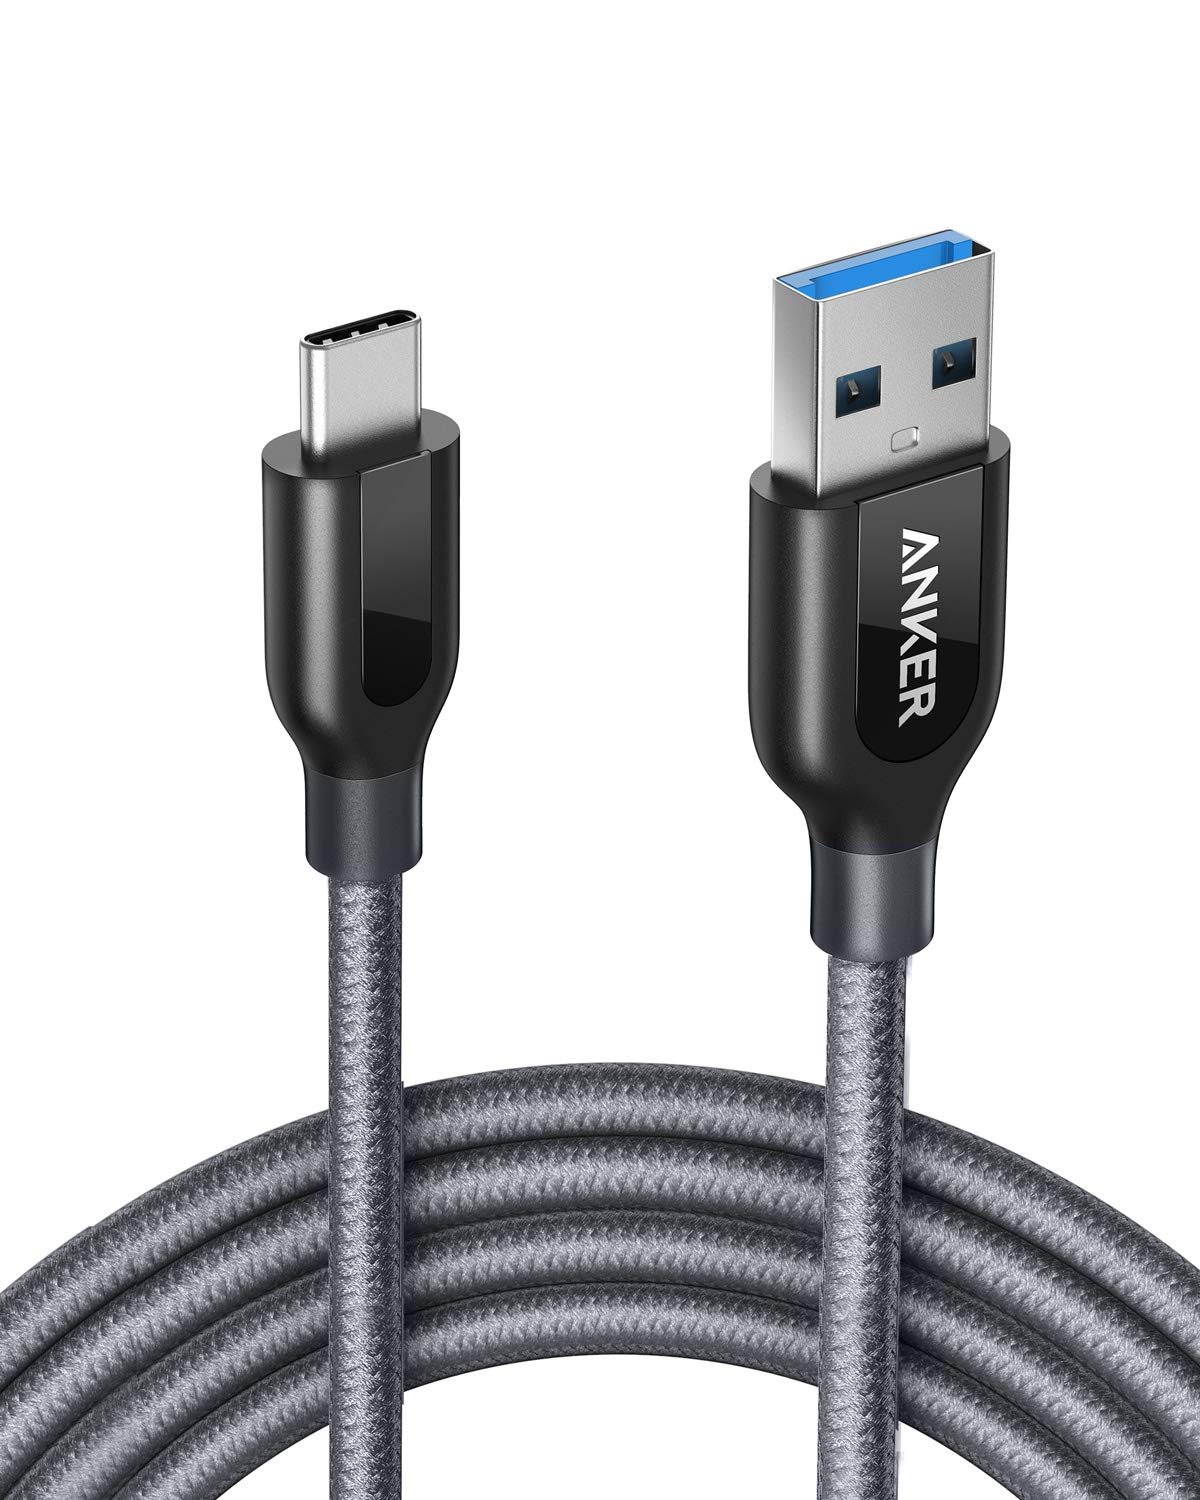 Amazon.com: USB Type C Cable, Anker Powerline+ USB C to USB 3.0 Cable  (6ft), High Durability, for Galaxy Note 8, S8, S8+, S9, MacBook, Sony XZ,  LG V20, and More